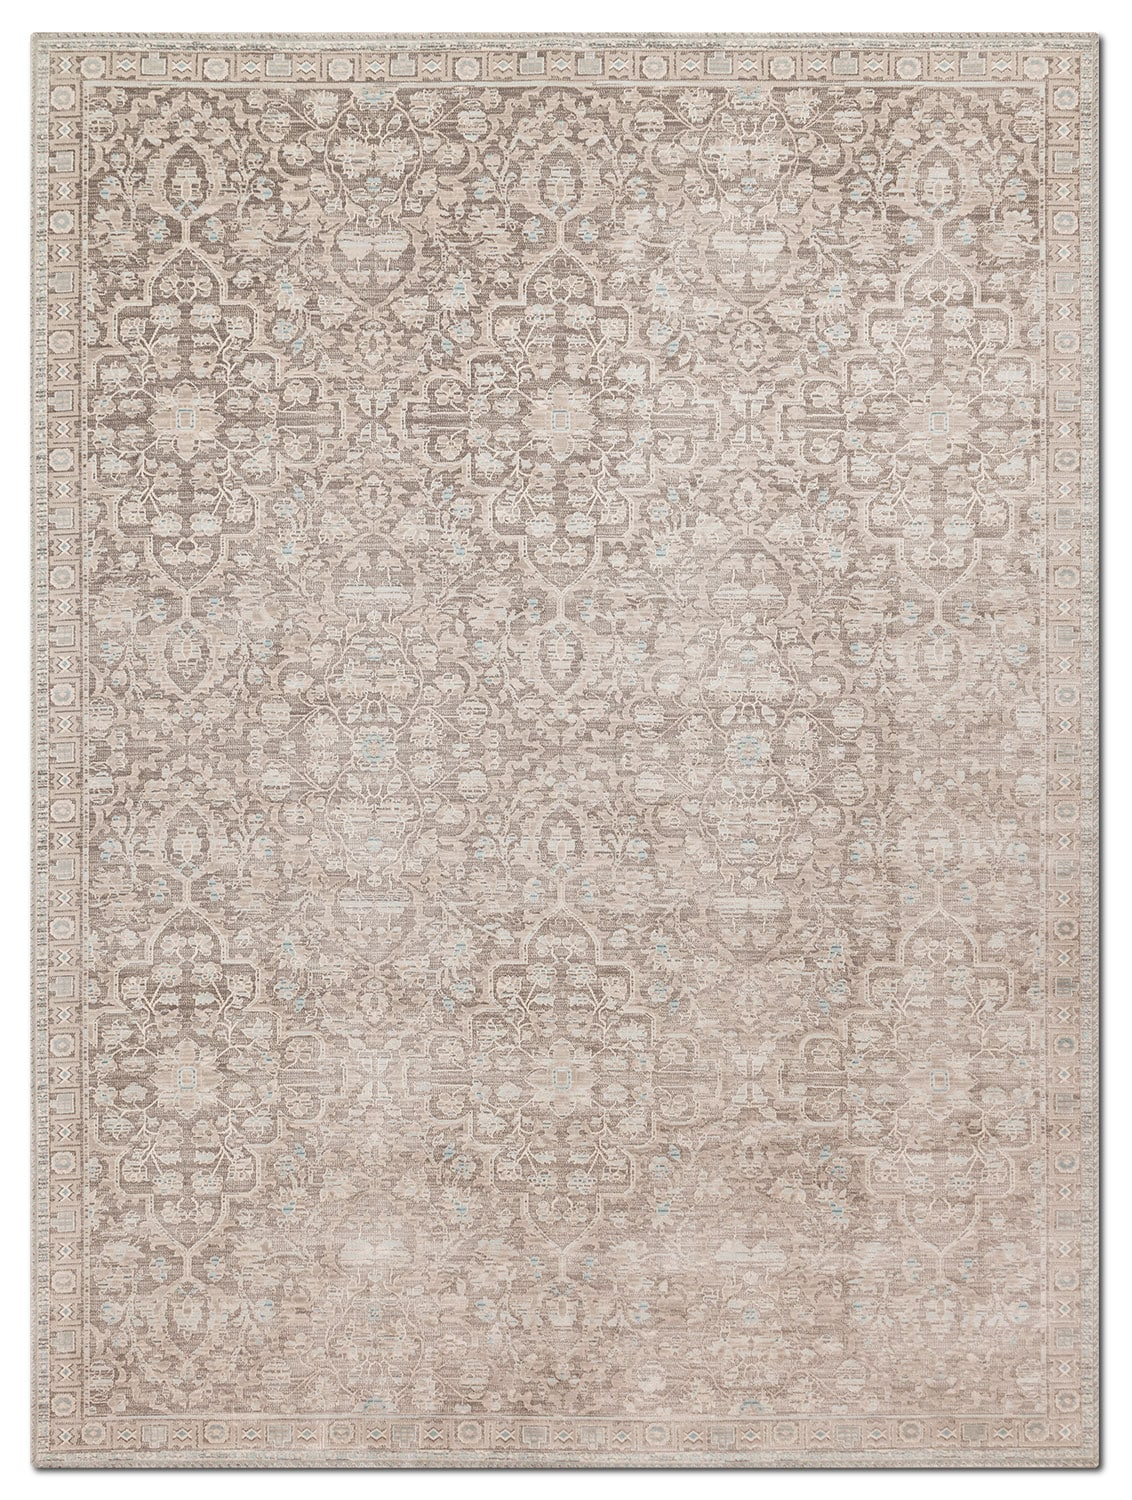 Ella Rose 5' x 8' Rug - Pewter